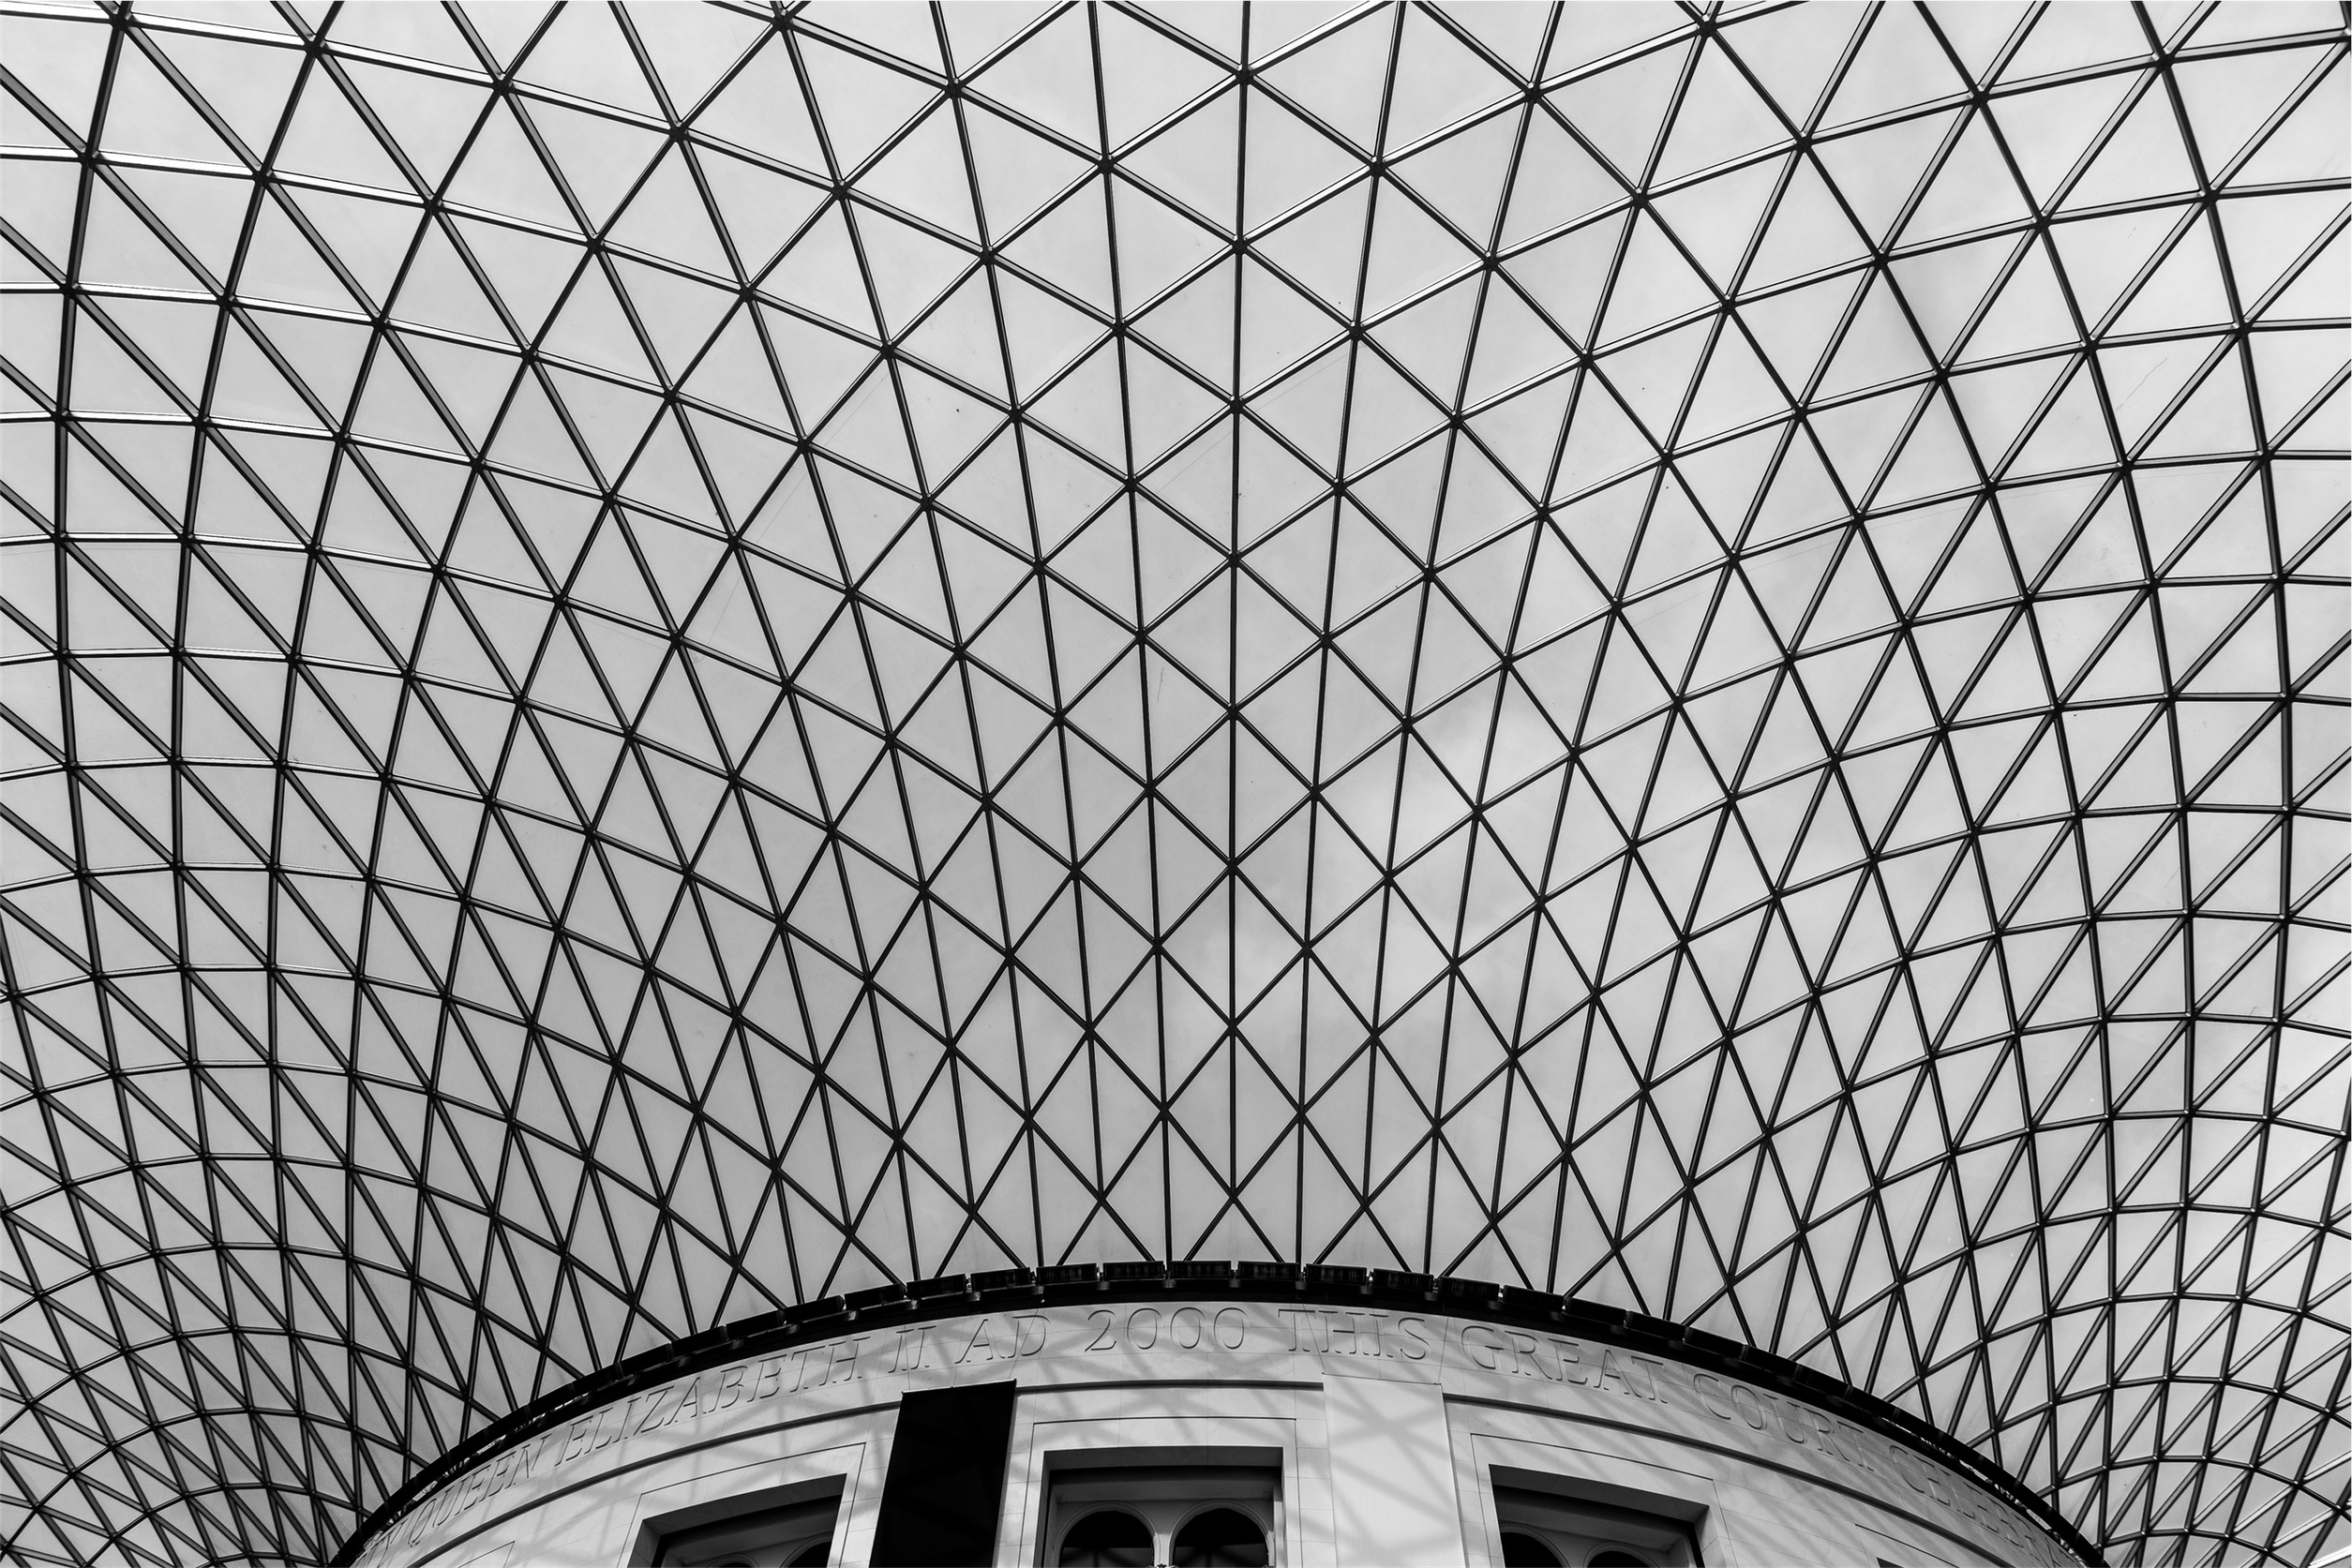 public-domain-images-free-stock-photos-architecture-black-and-white-building